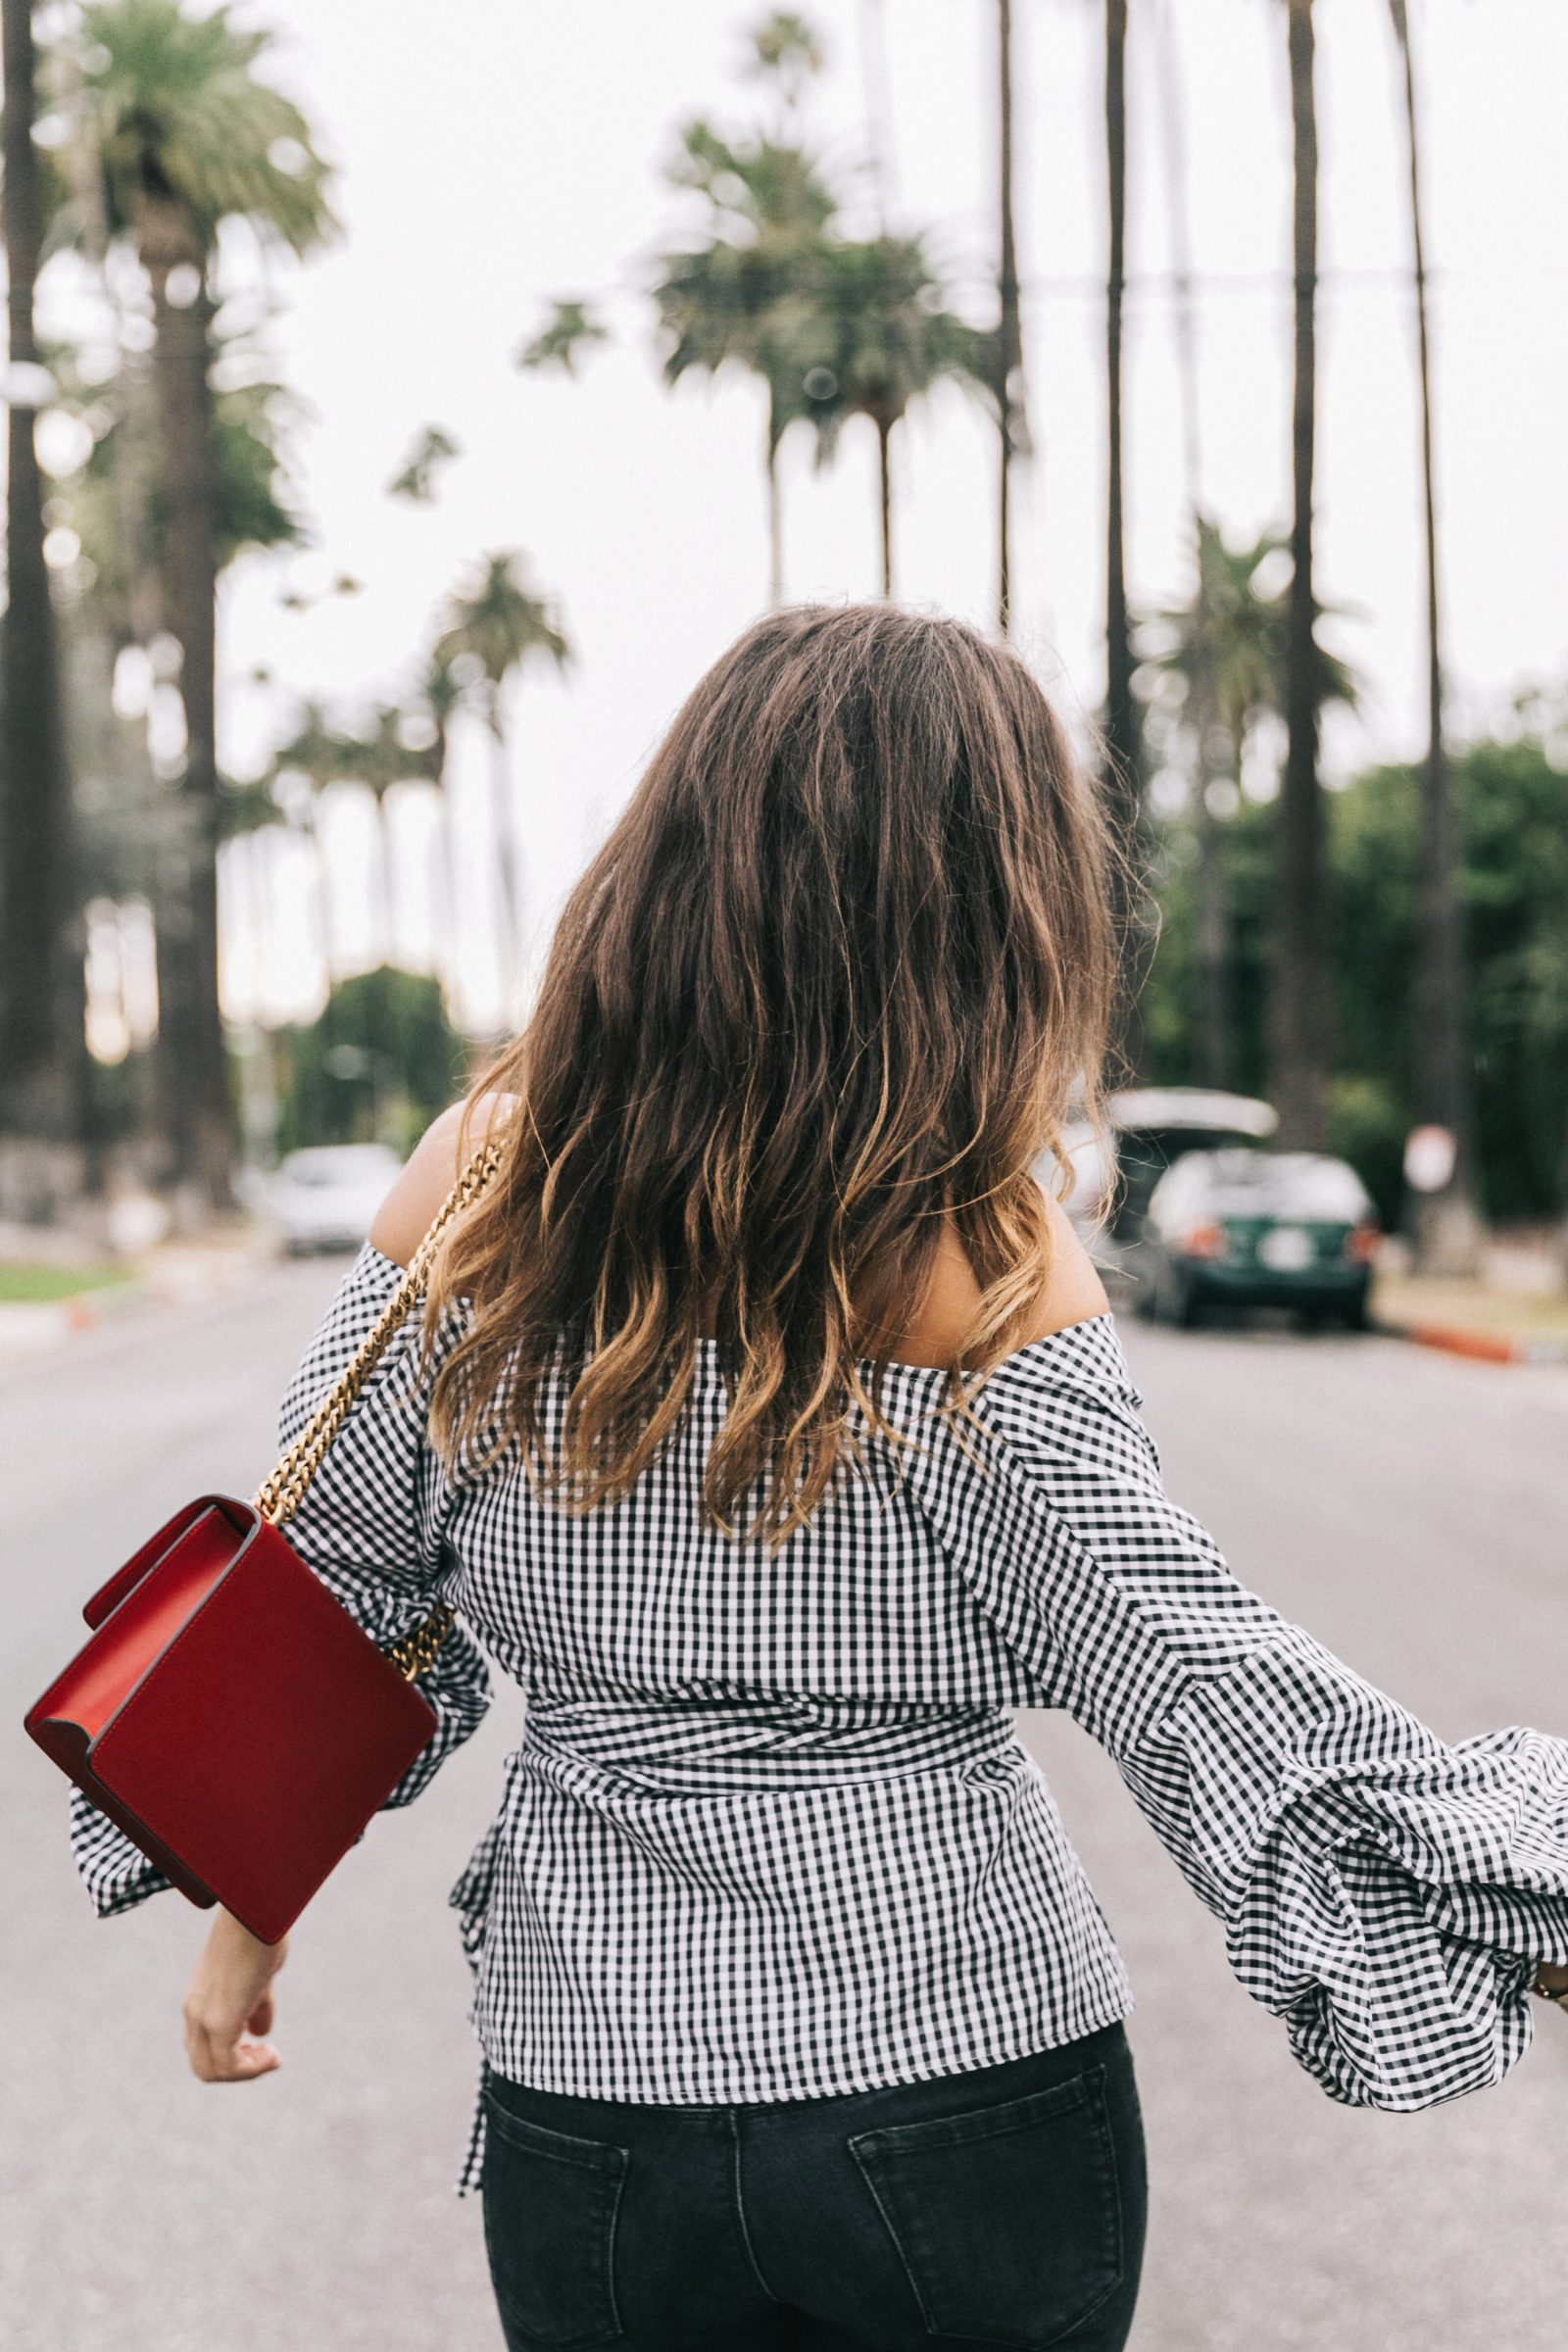 beverly_hills-off_the_shoulders_shirt-plaid-skinny_jeans-ripped_jeans-sincerely_jules_shop-gucci_bag-chicwish-outfit-street_style-los_angeles-collage_vintage-13